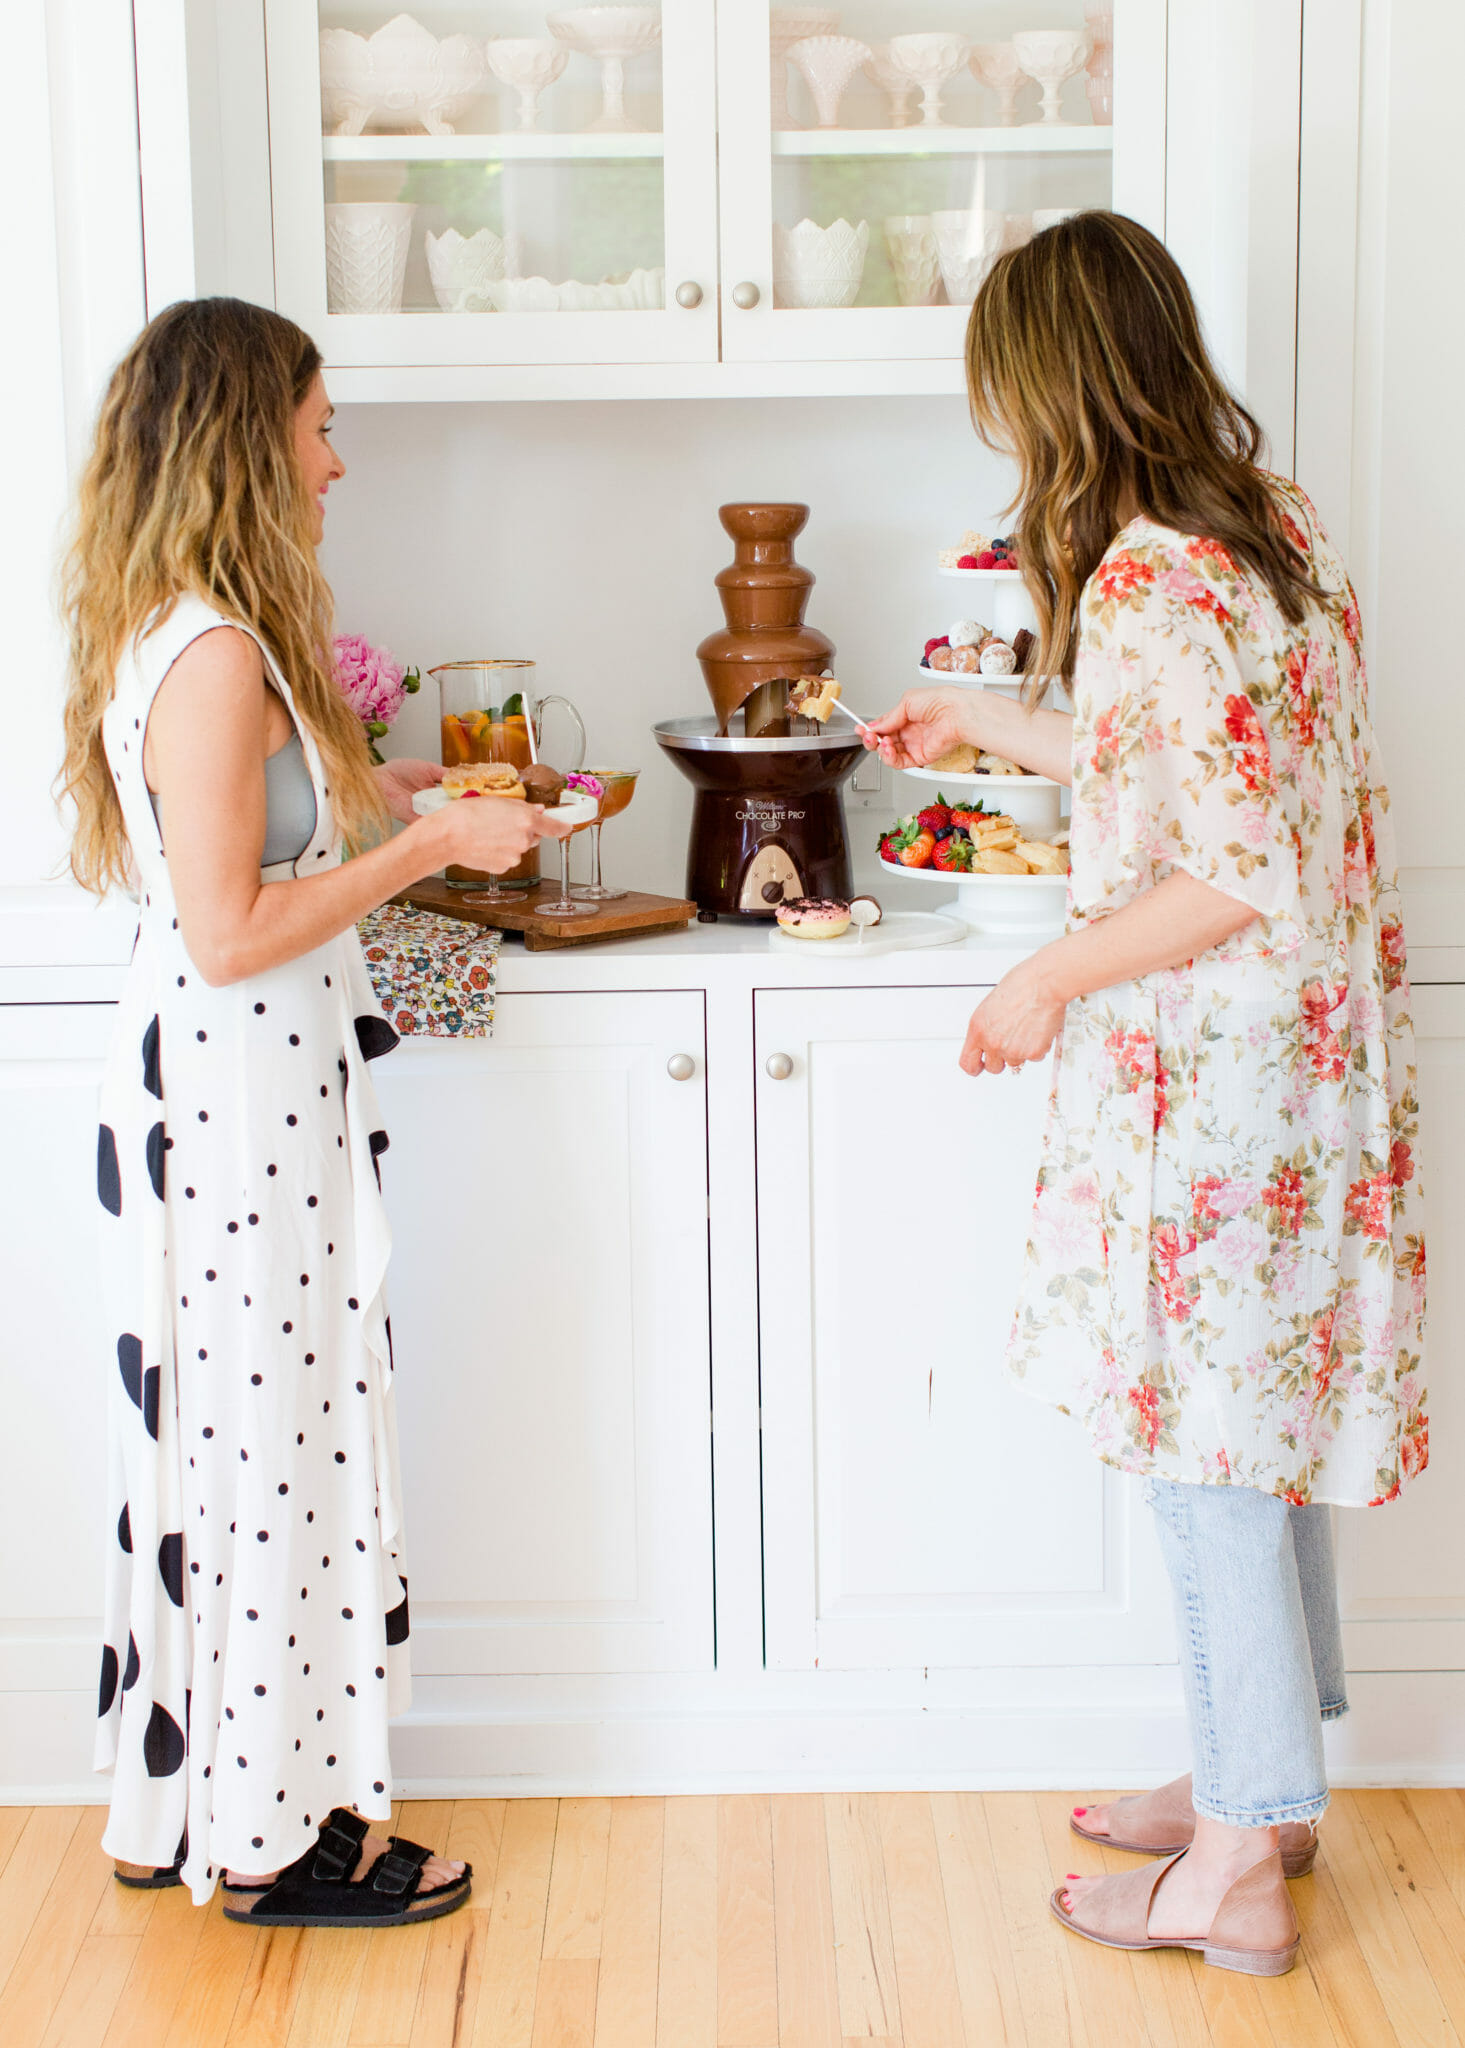 Tips for Hosting a Celebration Brunch || JennyCookies.com #brunch #partyideas #summerbrunch #entertaining #entertainingtips